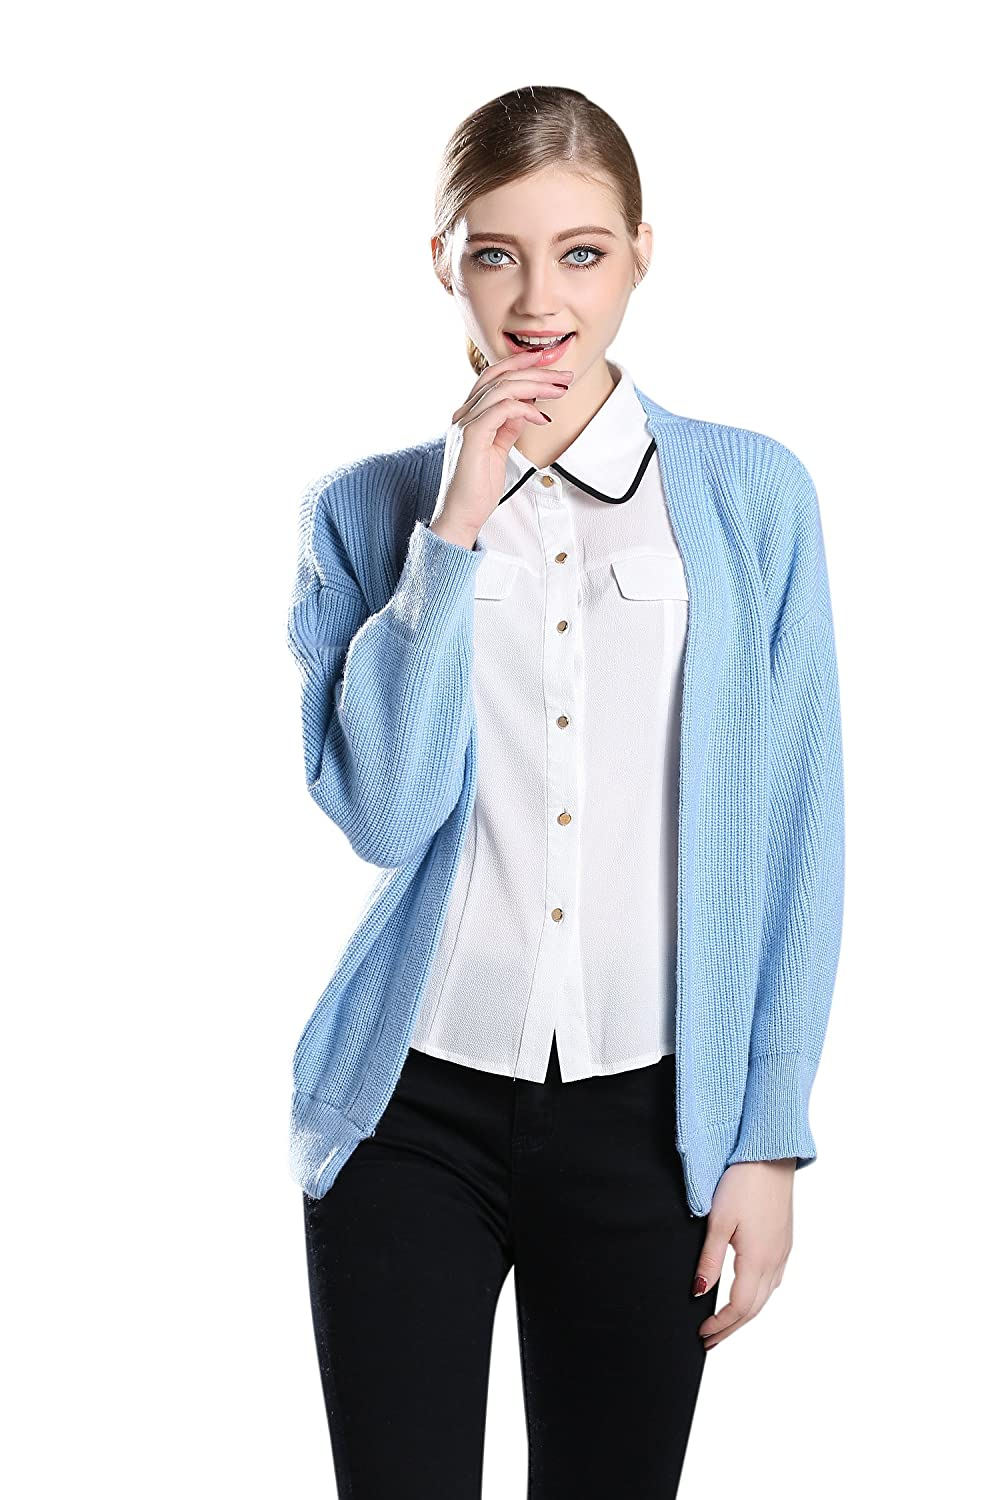 Liny Xin Women's 100% Cashmere Long Sleeve Thick Cardigan Sweater